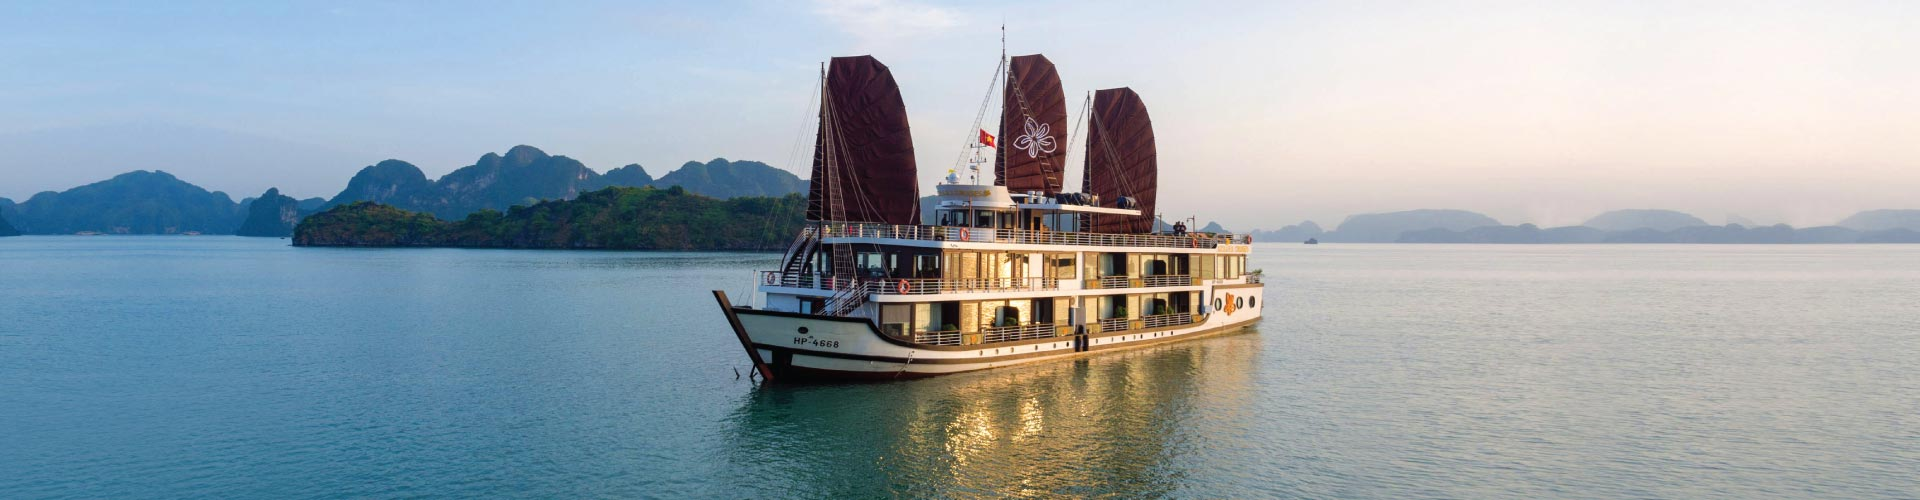 Hanoi & Ha Long Bay + Ninh Binh (Overnight Cruise)*